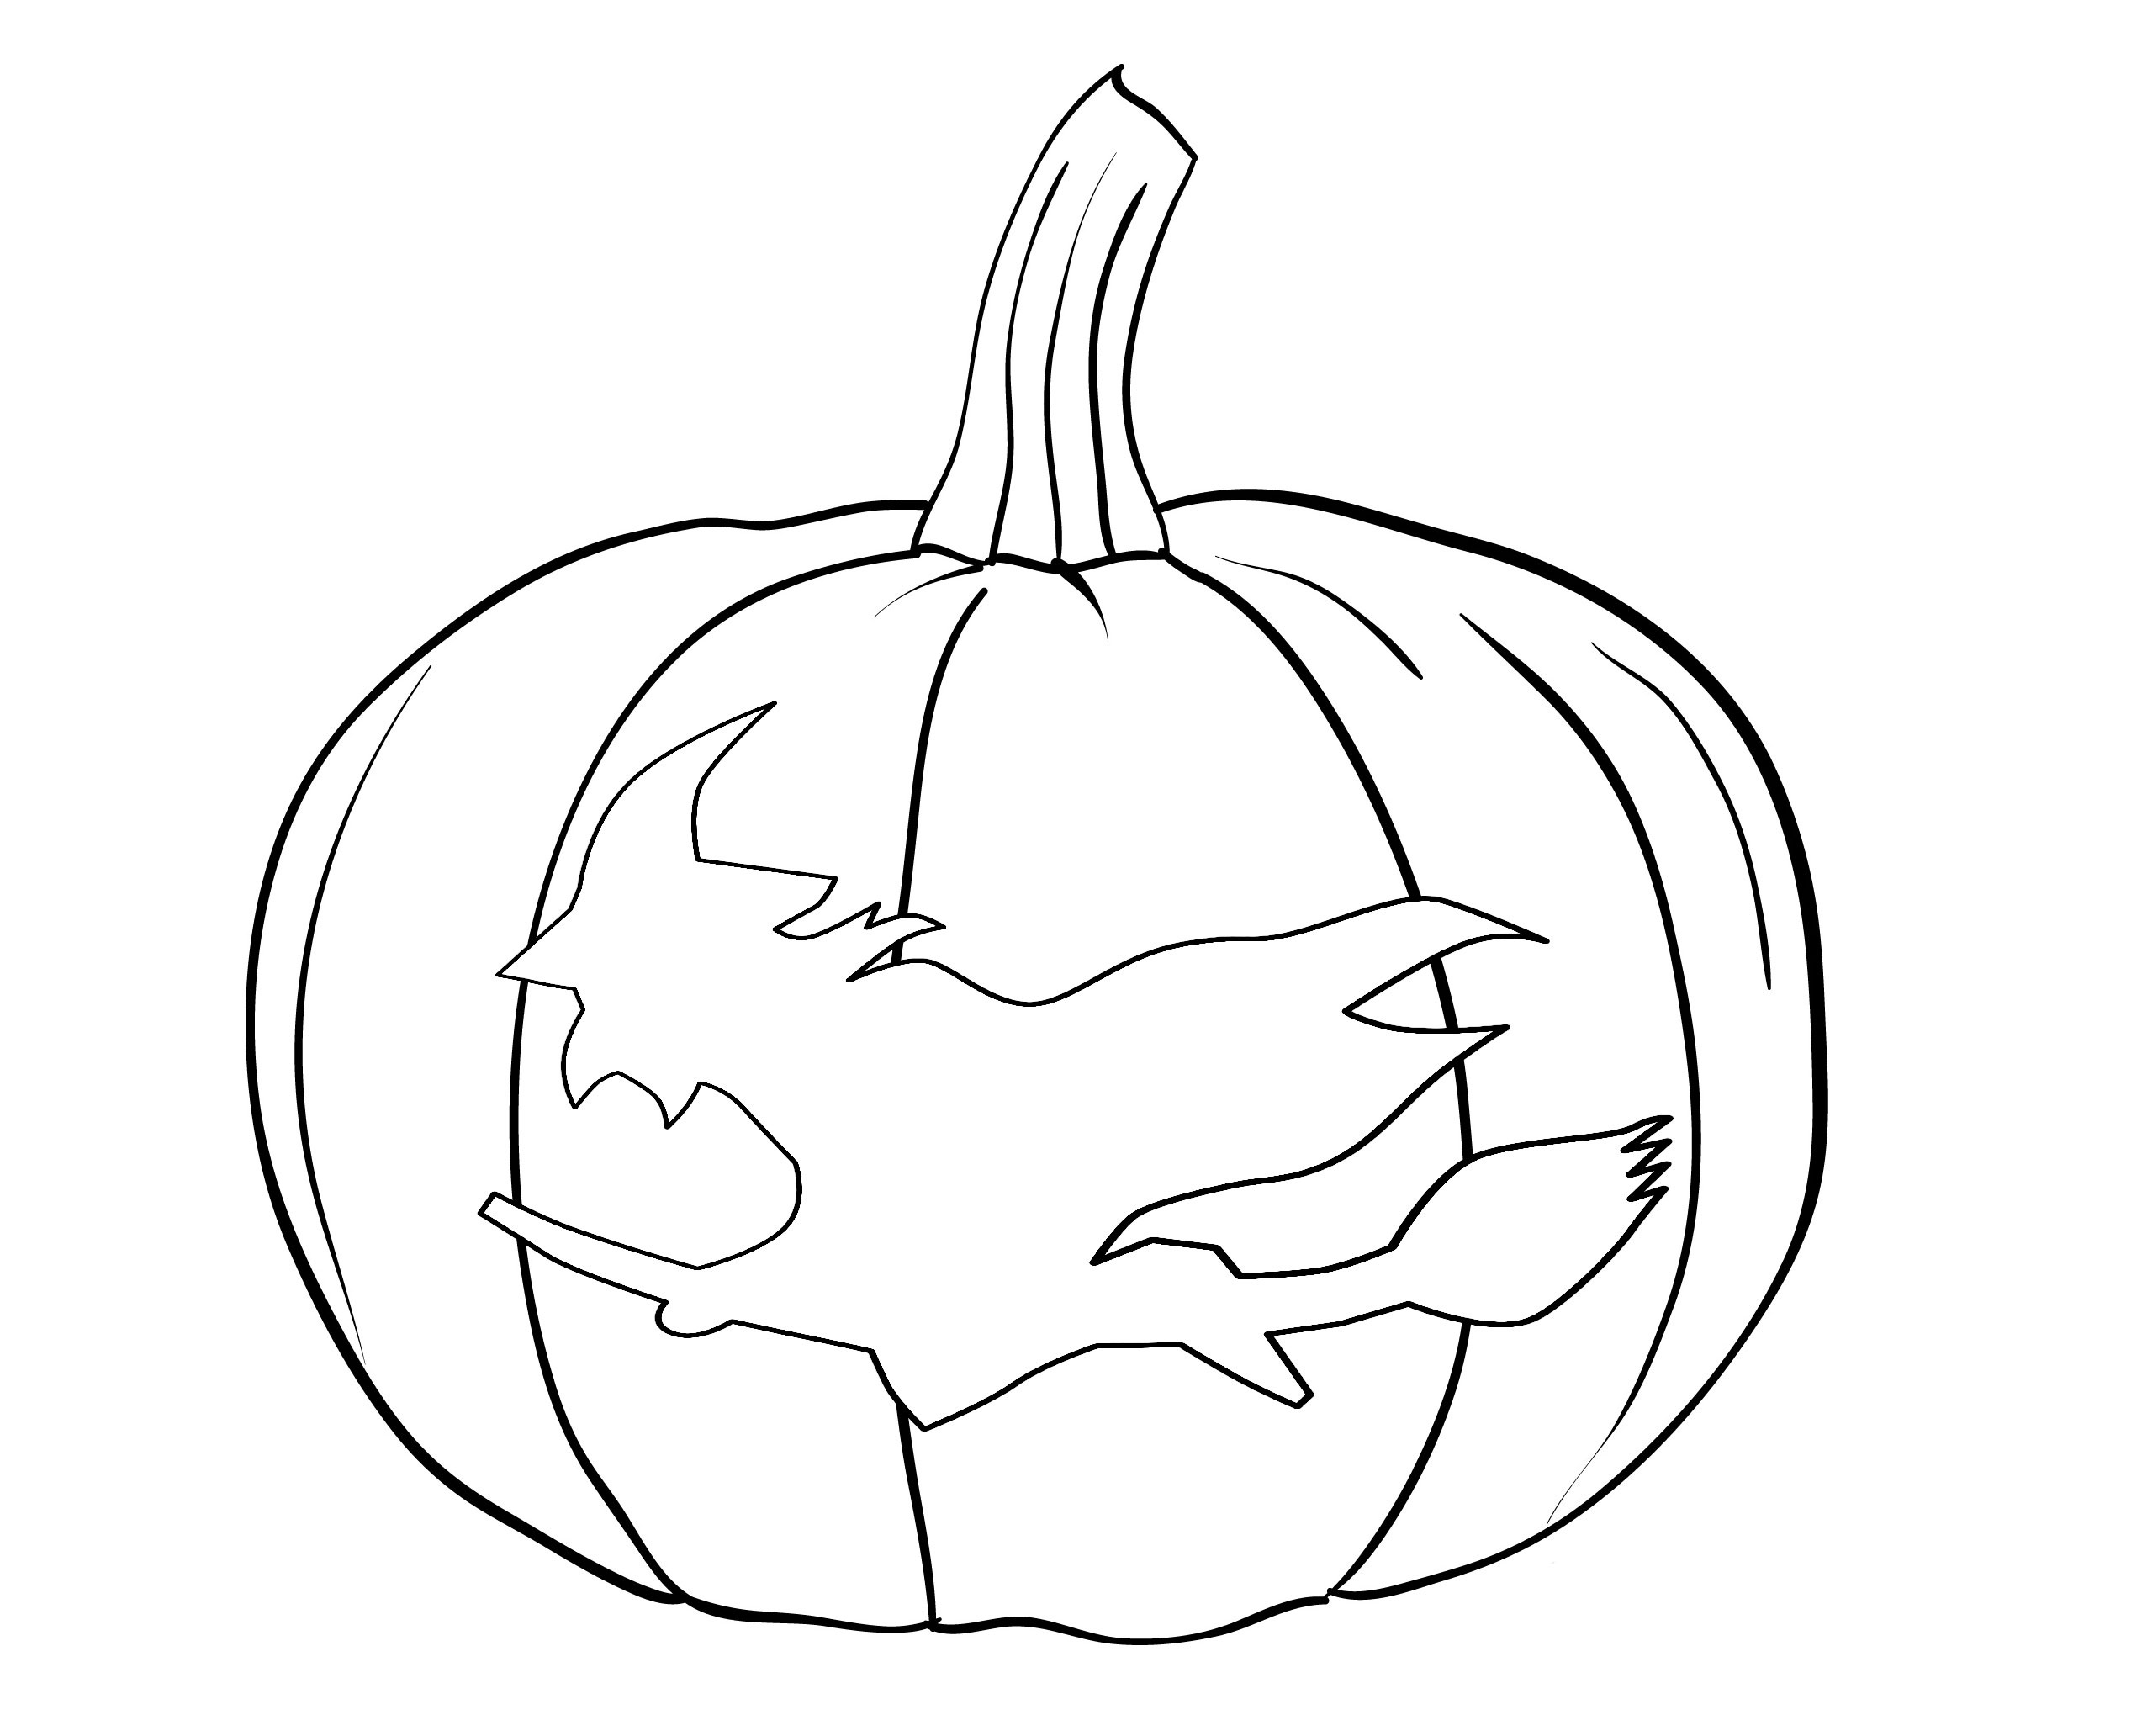 free printable pictures of pumpkins free printable pumpkin coloring pages for kids free of printable pictures pumpkins